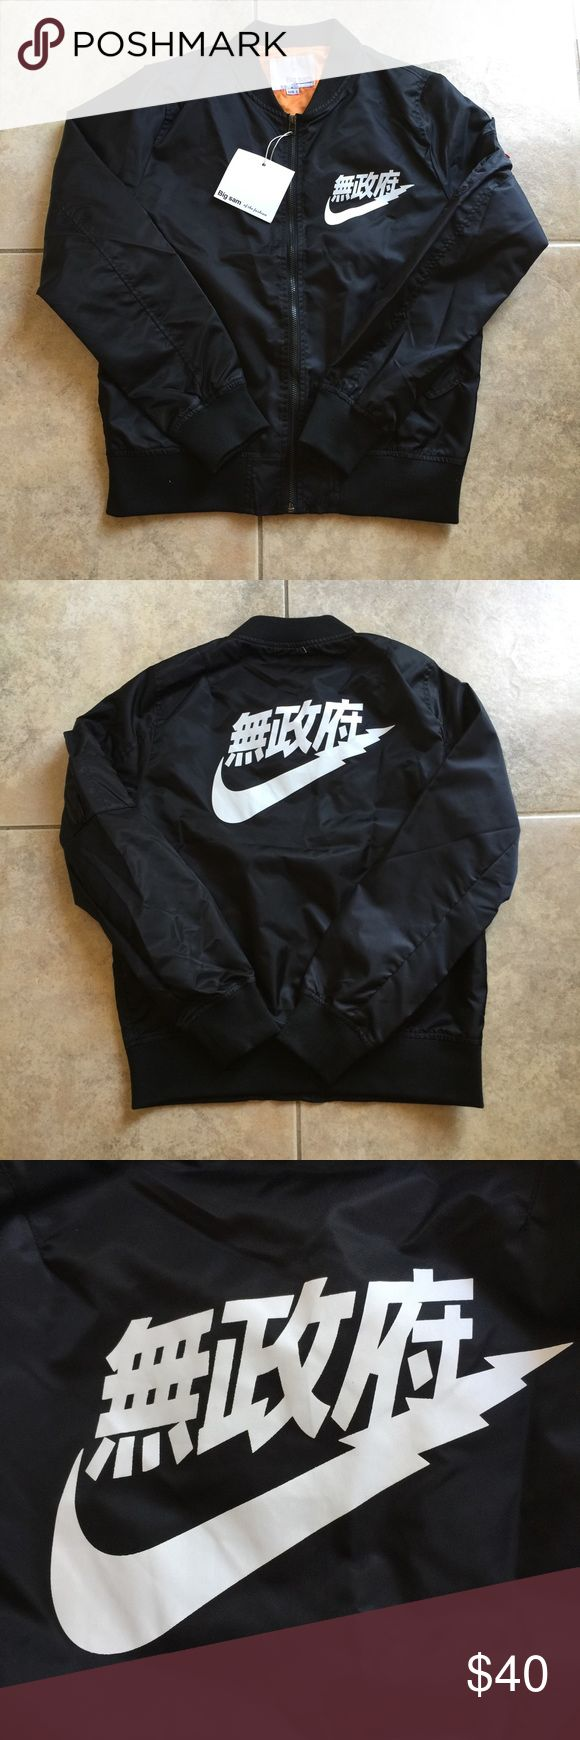 "Rare Air Jacket Brand New with tags. Size Men's Large (Fits more like a Men's Medium). No stains, rips, or fading. Measurements - Pit to Pit: 21"". Top to Bottom: 26"". Made by Big Sam. Big Sam Jackets & Coats"